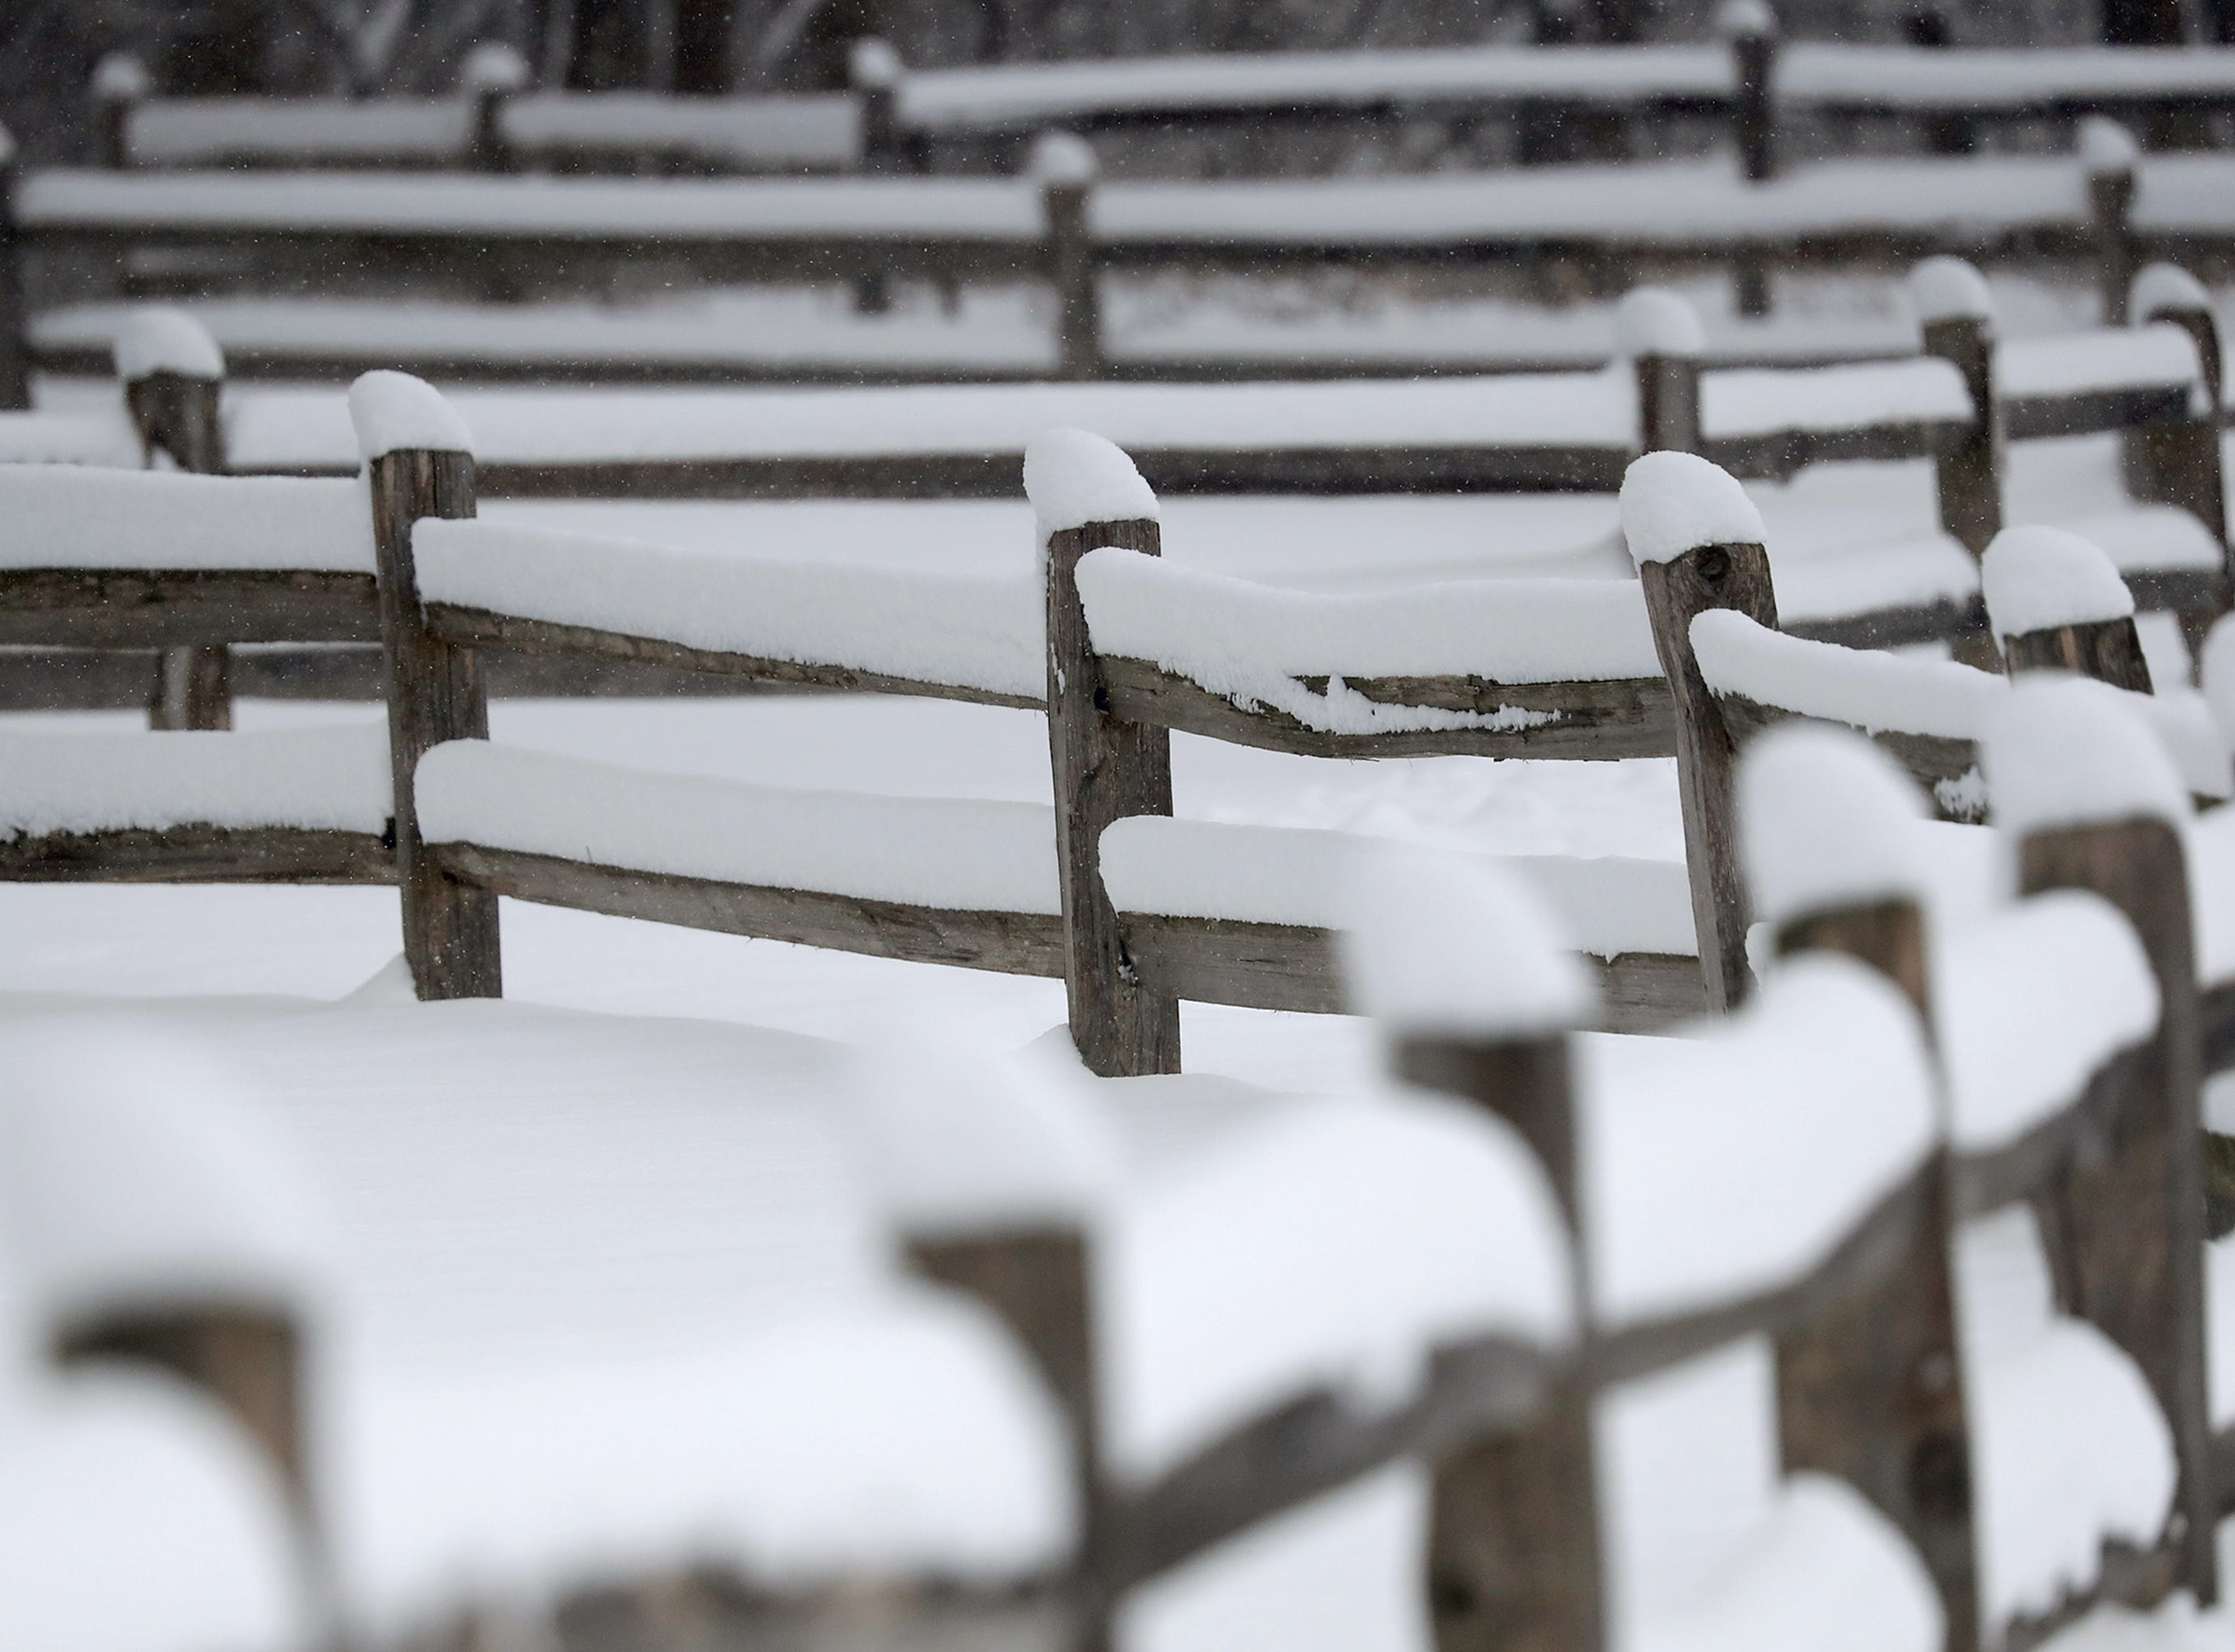 A fence line buried in snow on Tuesday, February 12, 2019, at the 1000 Islands Enviornmental Center in Kaukauna, Wis. The latest snow storm to move through the state dropped several inches of snow overnight, 6 to 12 inches are expcted by Tuesday evening.Wm. Glasheen/USA TODAY NETWORK-Wisconsin.